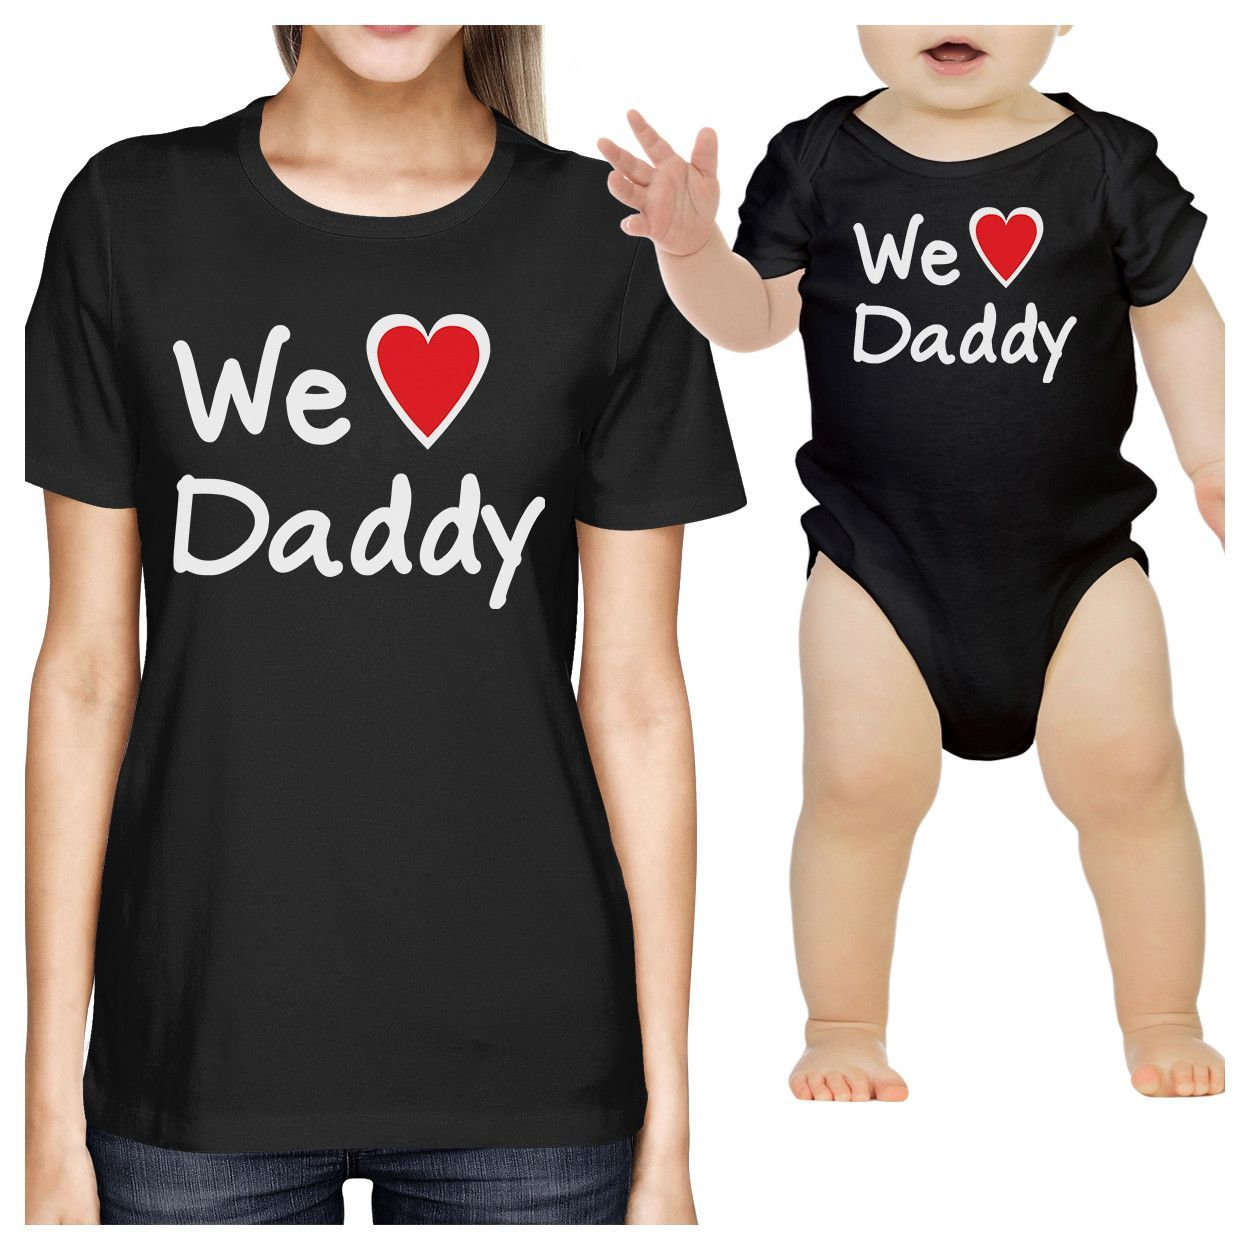 f75c84e58 We Love Daddy Black Mom and Baby Matching Outfits Fathers Day Gifts ...